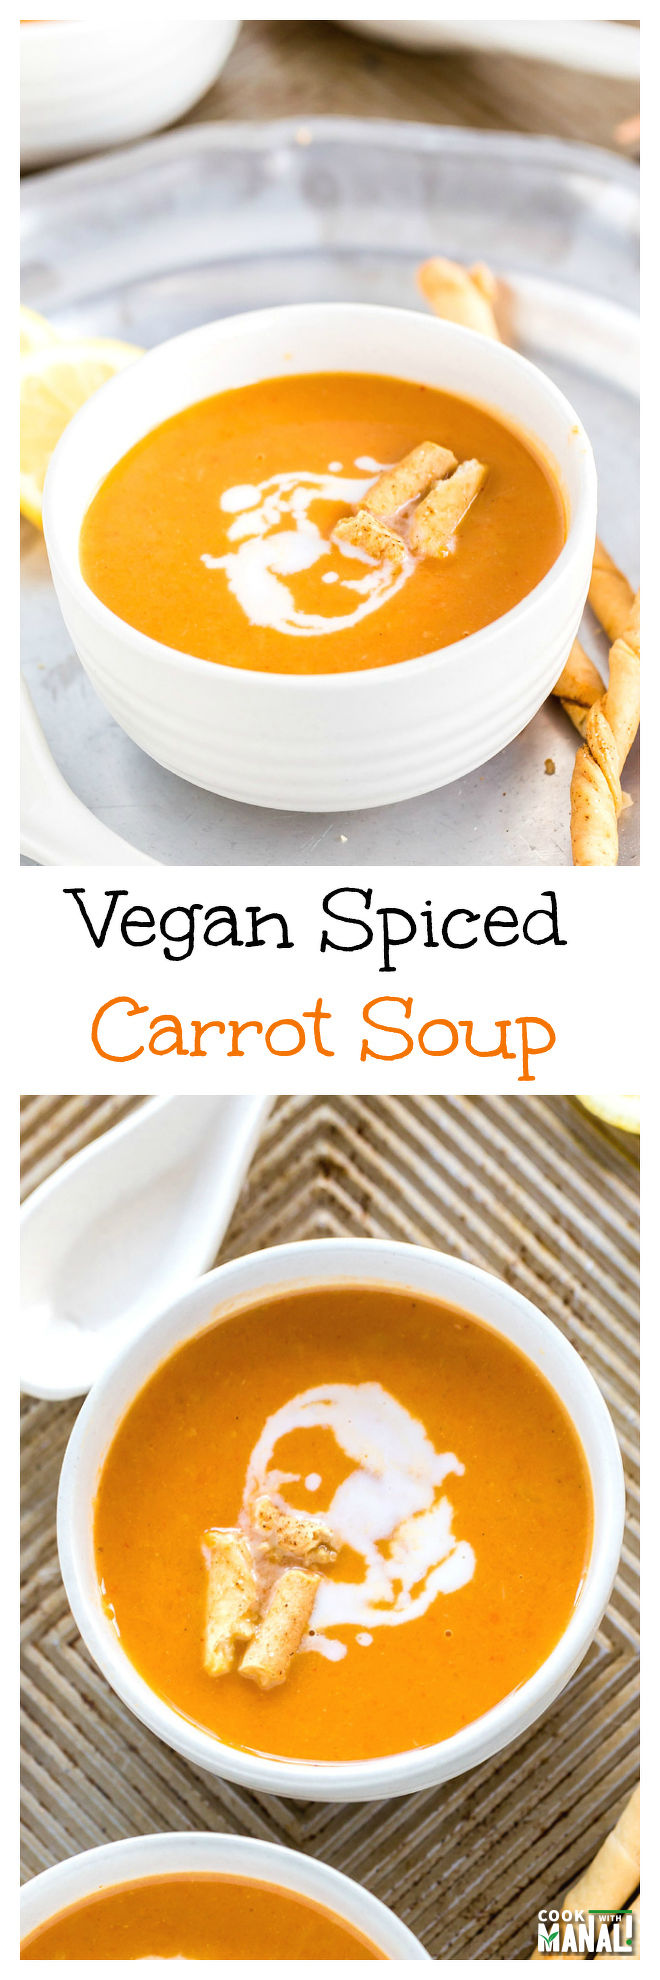 Spiced Carrot Soup - Cook With Manali